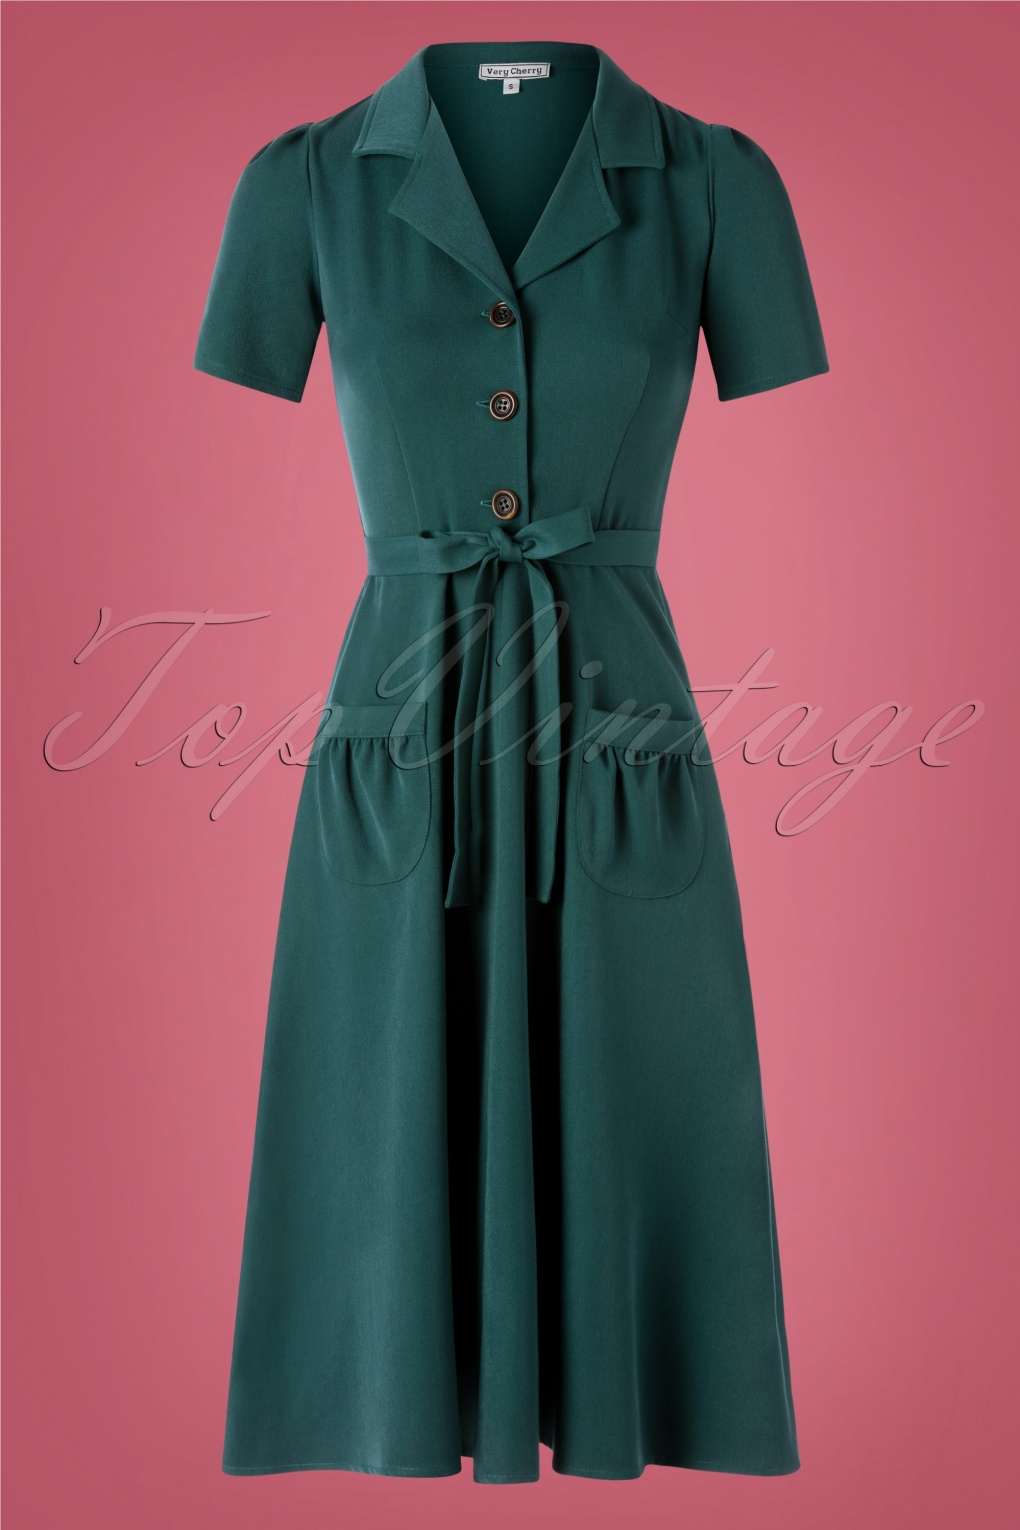 Swing Dance Clothing You Can Dance In 40s Midi Revers Dress in Petrol £114.65 AT vintagedancer.com